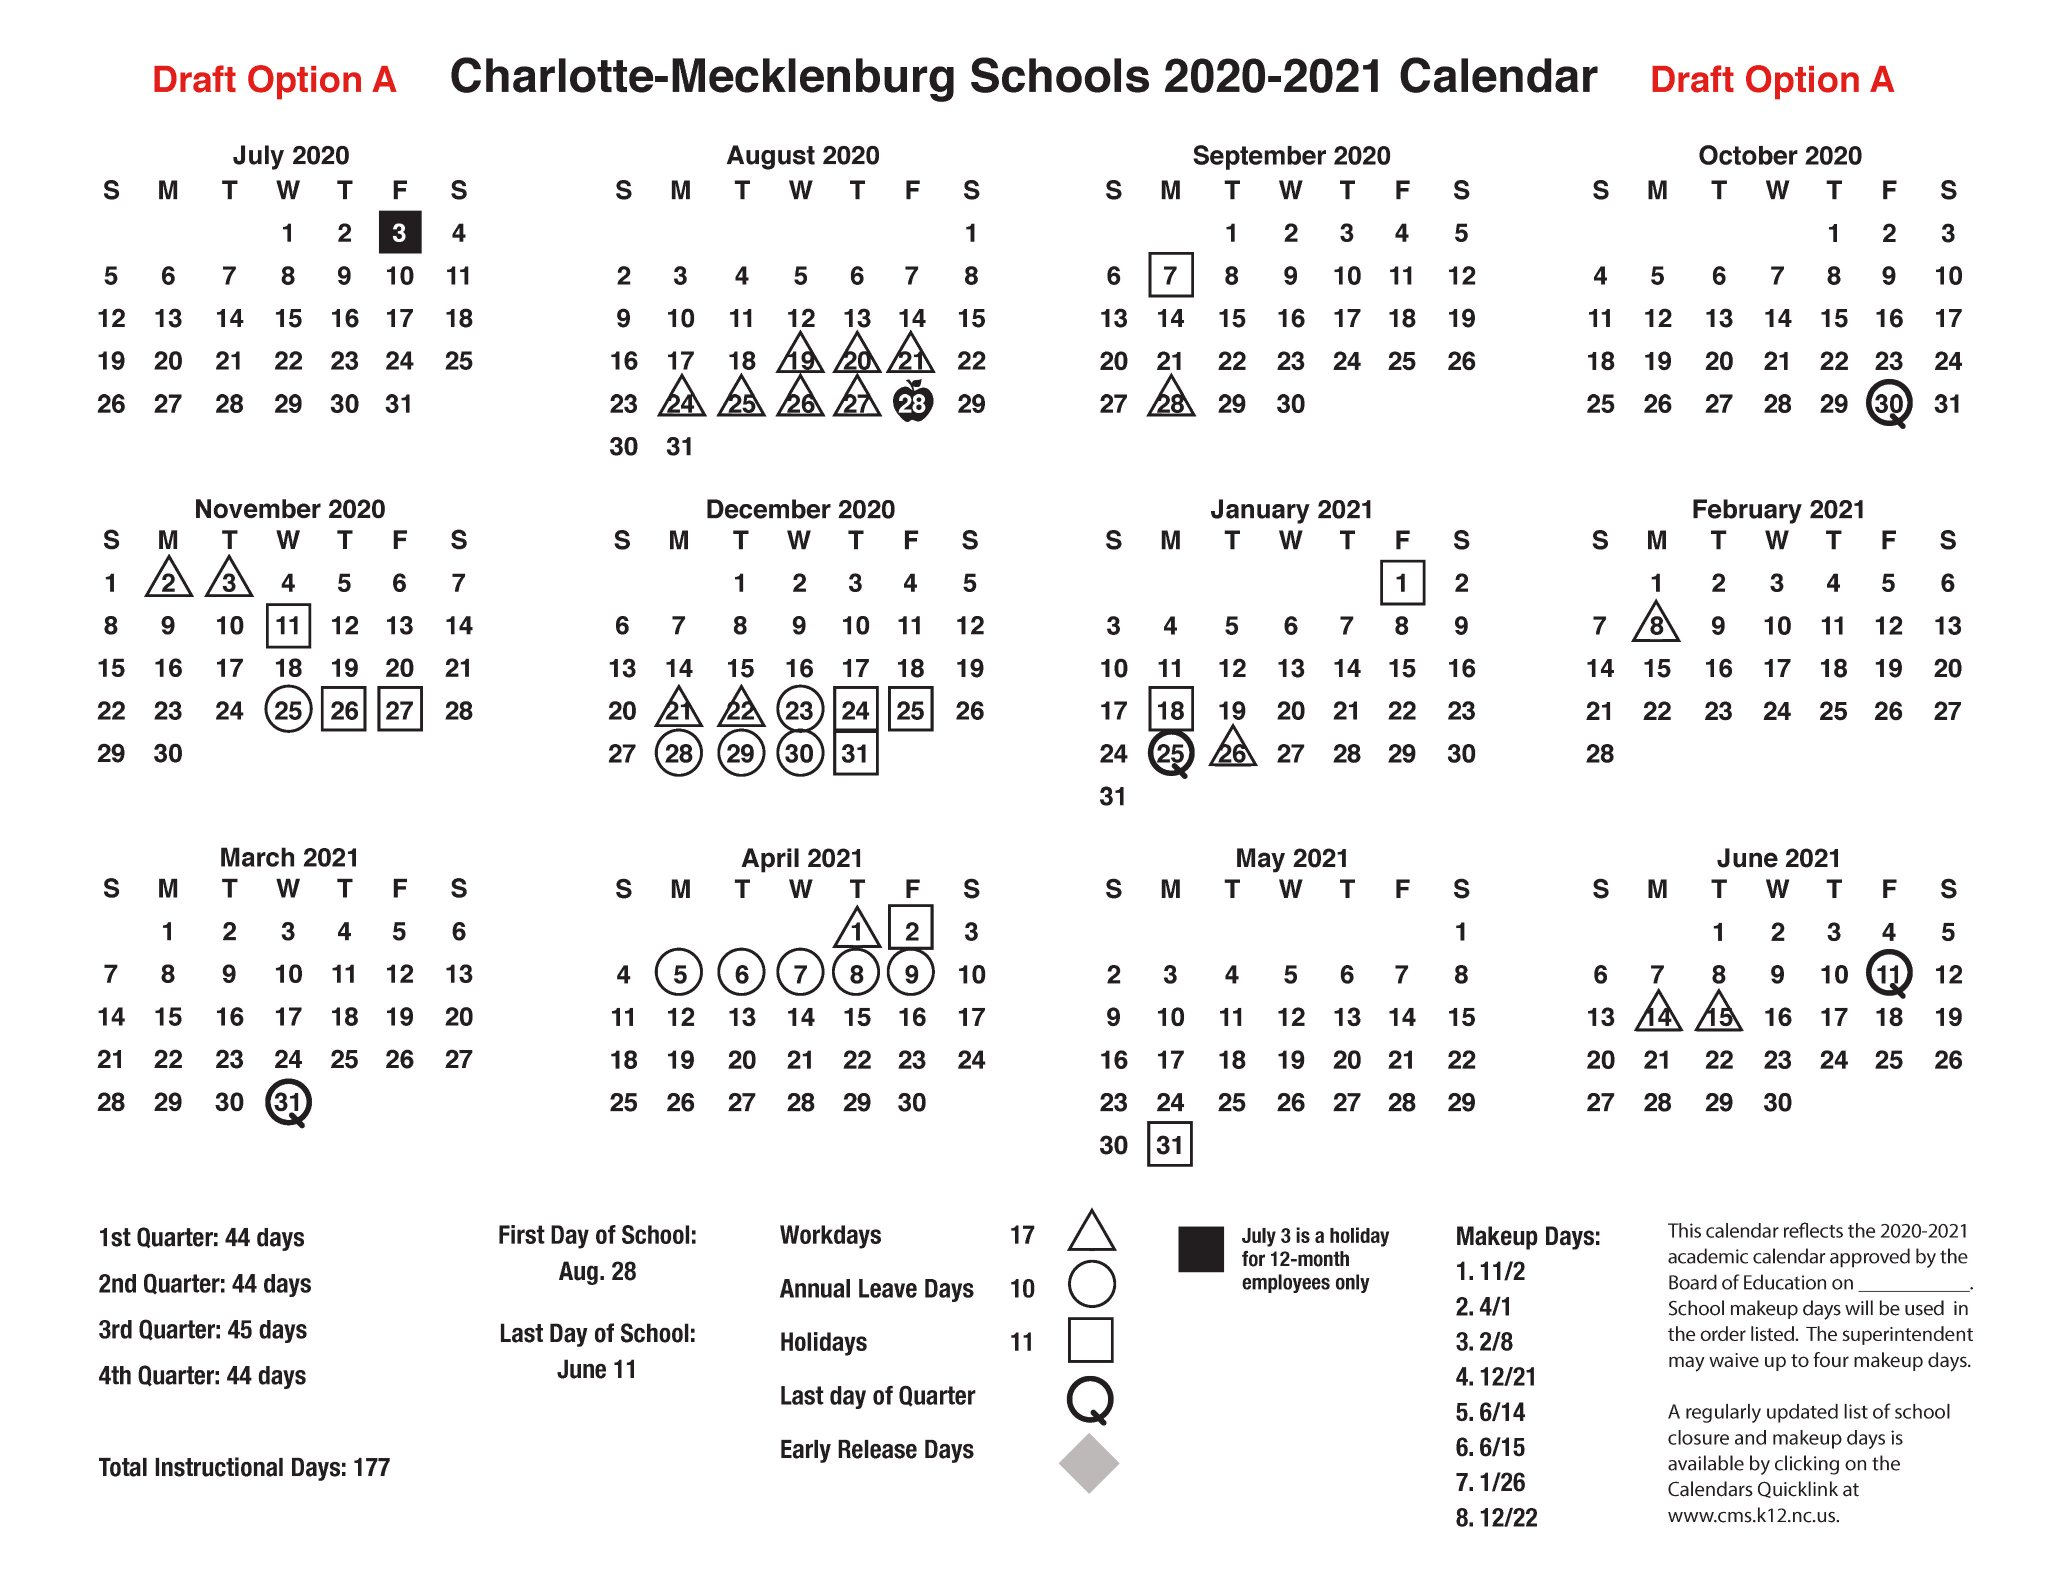 Cms Calendar 2022 2023.Cms On Twitter We Invite You To Vote For Your Preferred Calendar For The 2020 2021 School Year The Cms Calendar Committee Has Developed Two Options Vote For Your Preference At Https T Co O2gkzn3olp Cmssupt